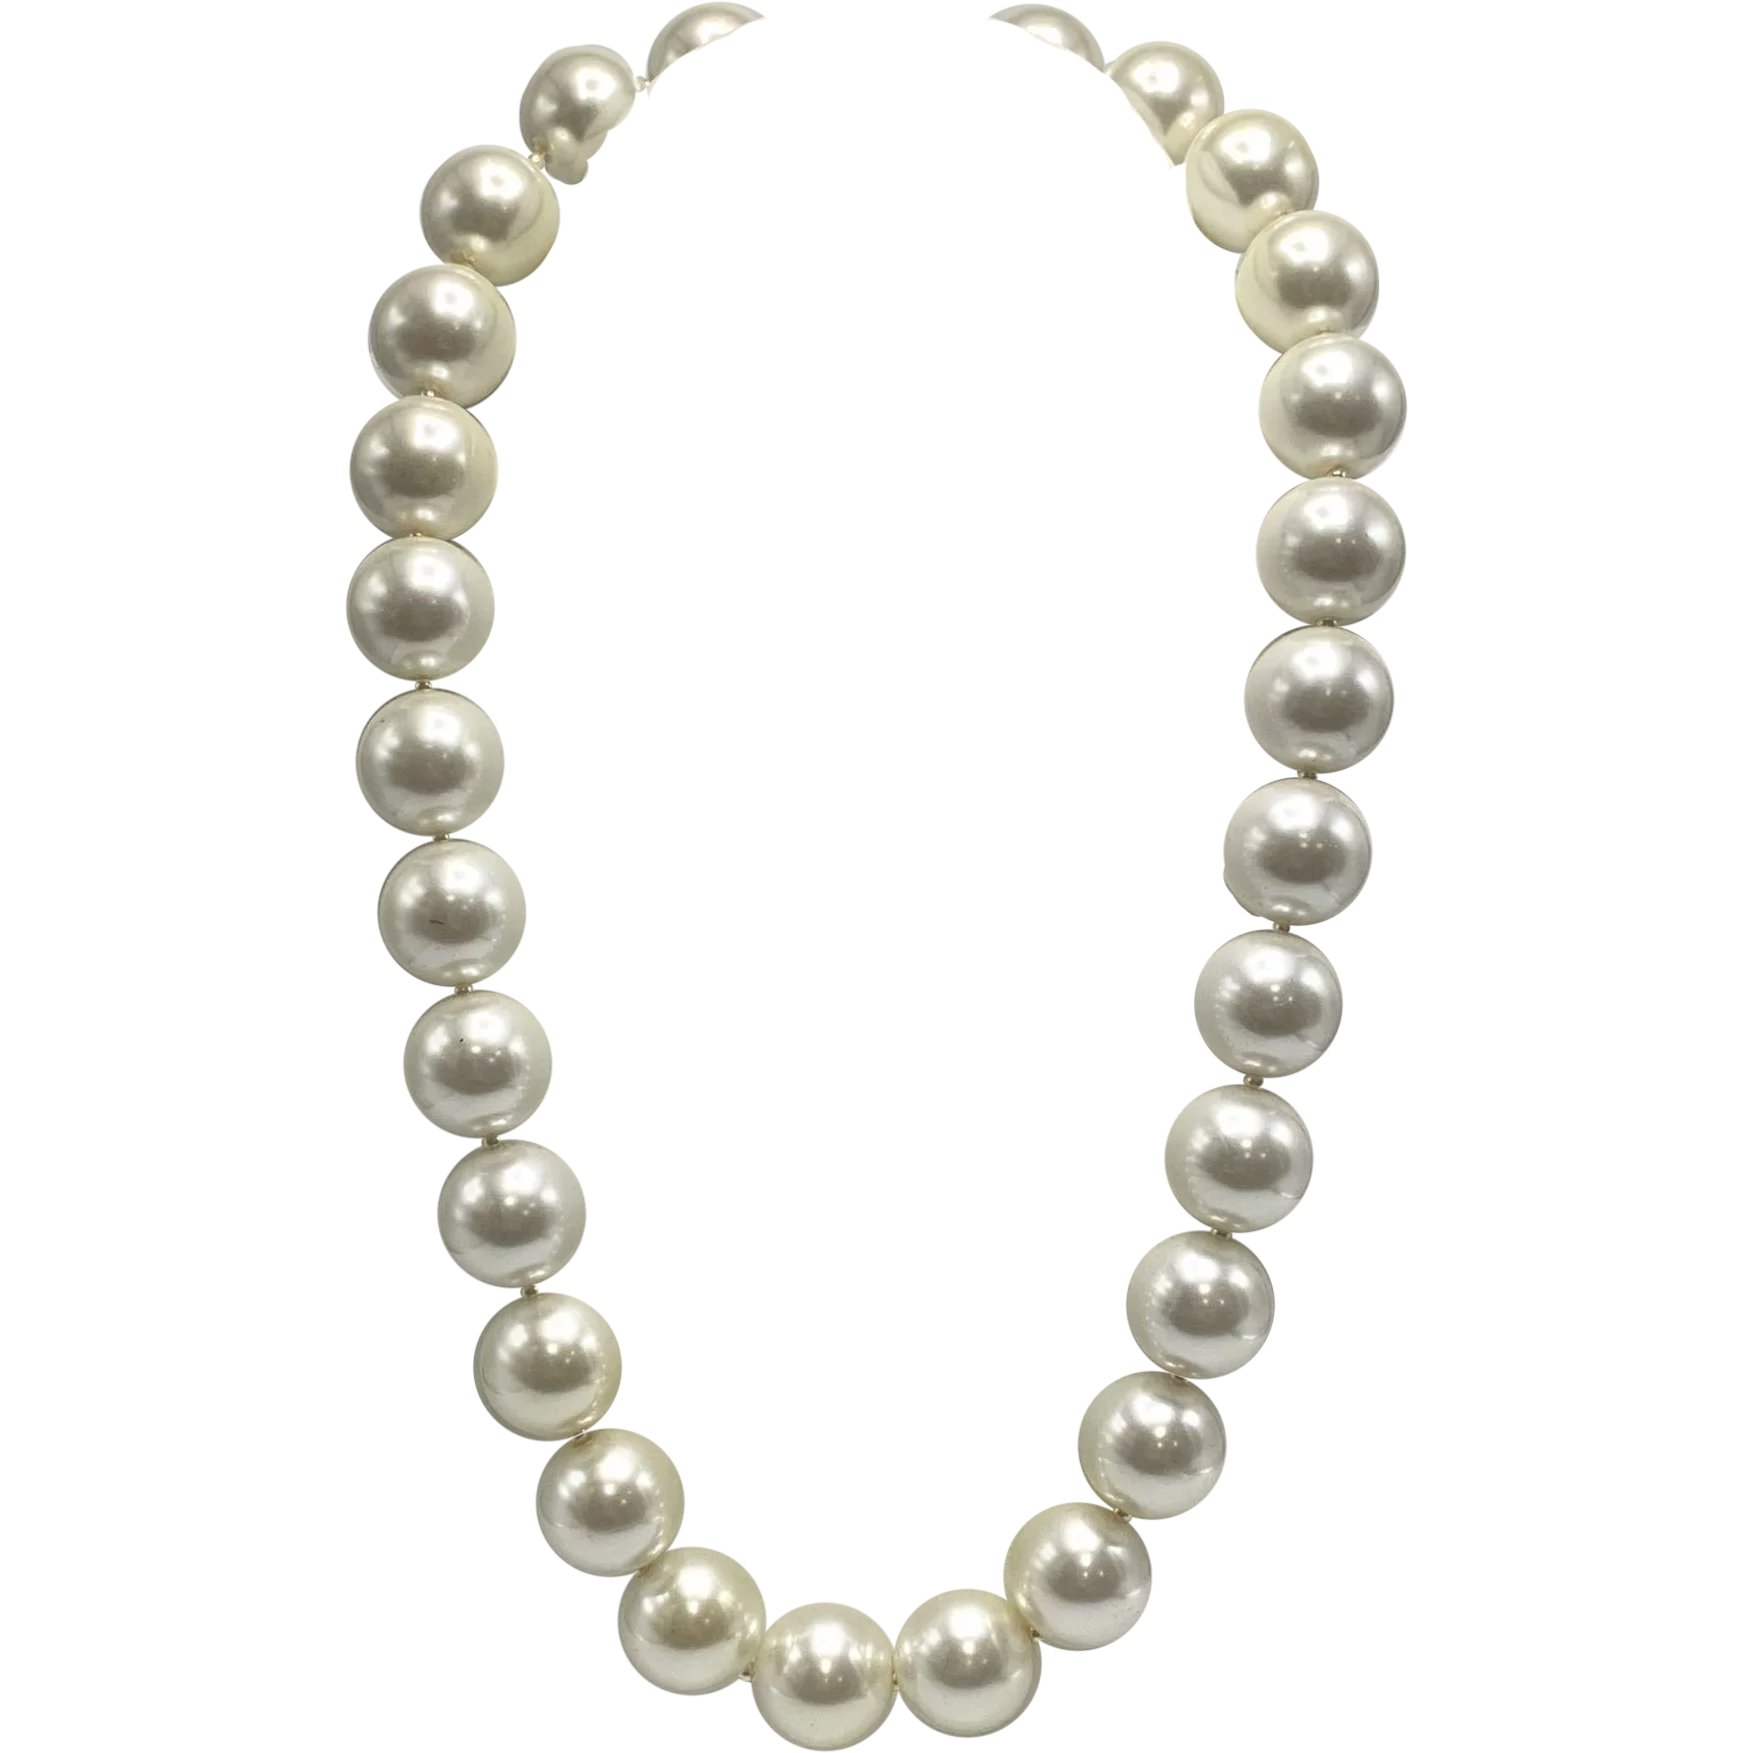 Kenneth Jay Lane Twisted Faux Pearl Necklace 17 3 ext Gray